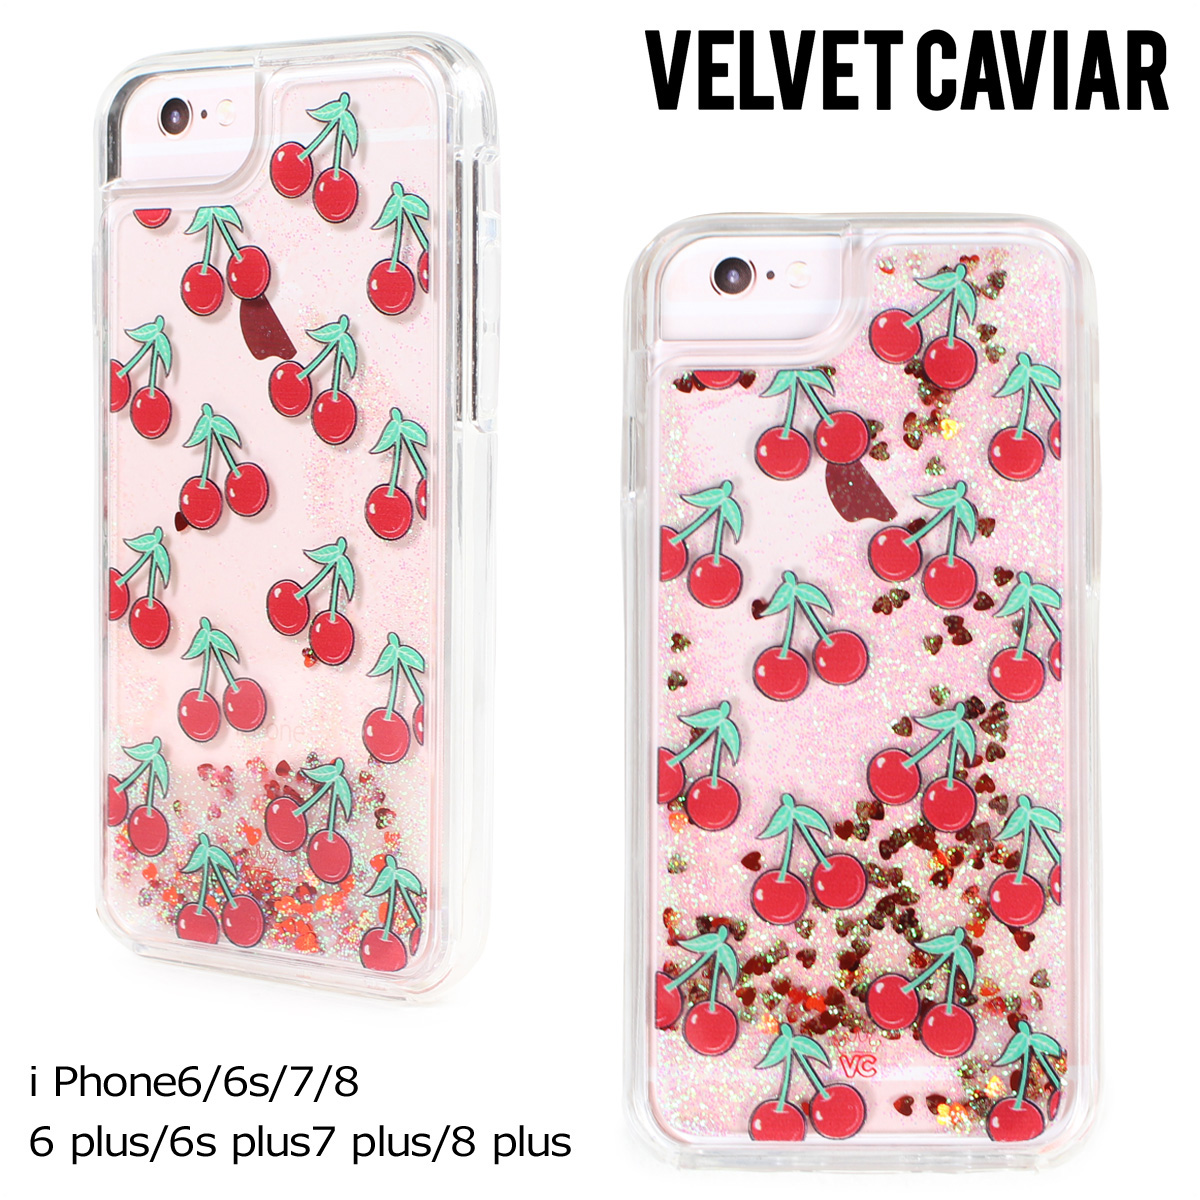 on sale 1643d 8e702 Velvet Caviar CHERRY BOMB IPHONE CASE velvet caviar iPhone8 iPhone7 8 Plus  7Plus 6s six cases smartphone iPhone case eyephone iPhone velvet Lady's ...